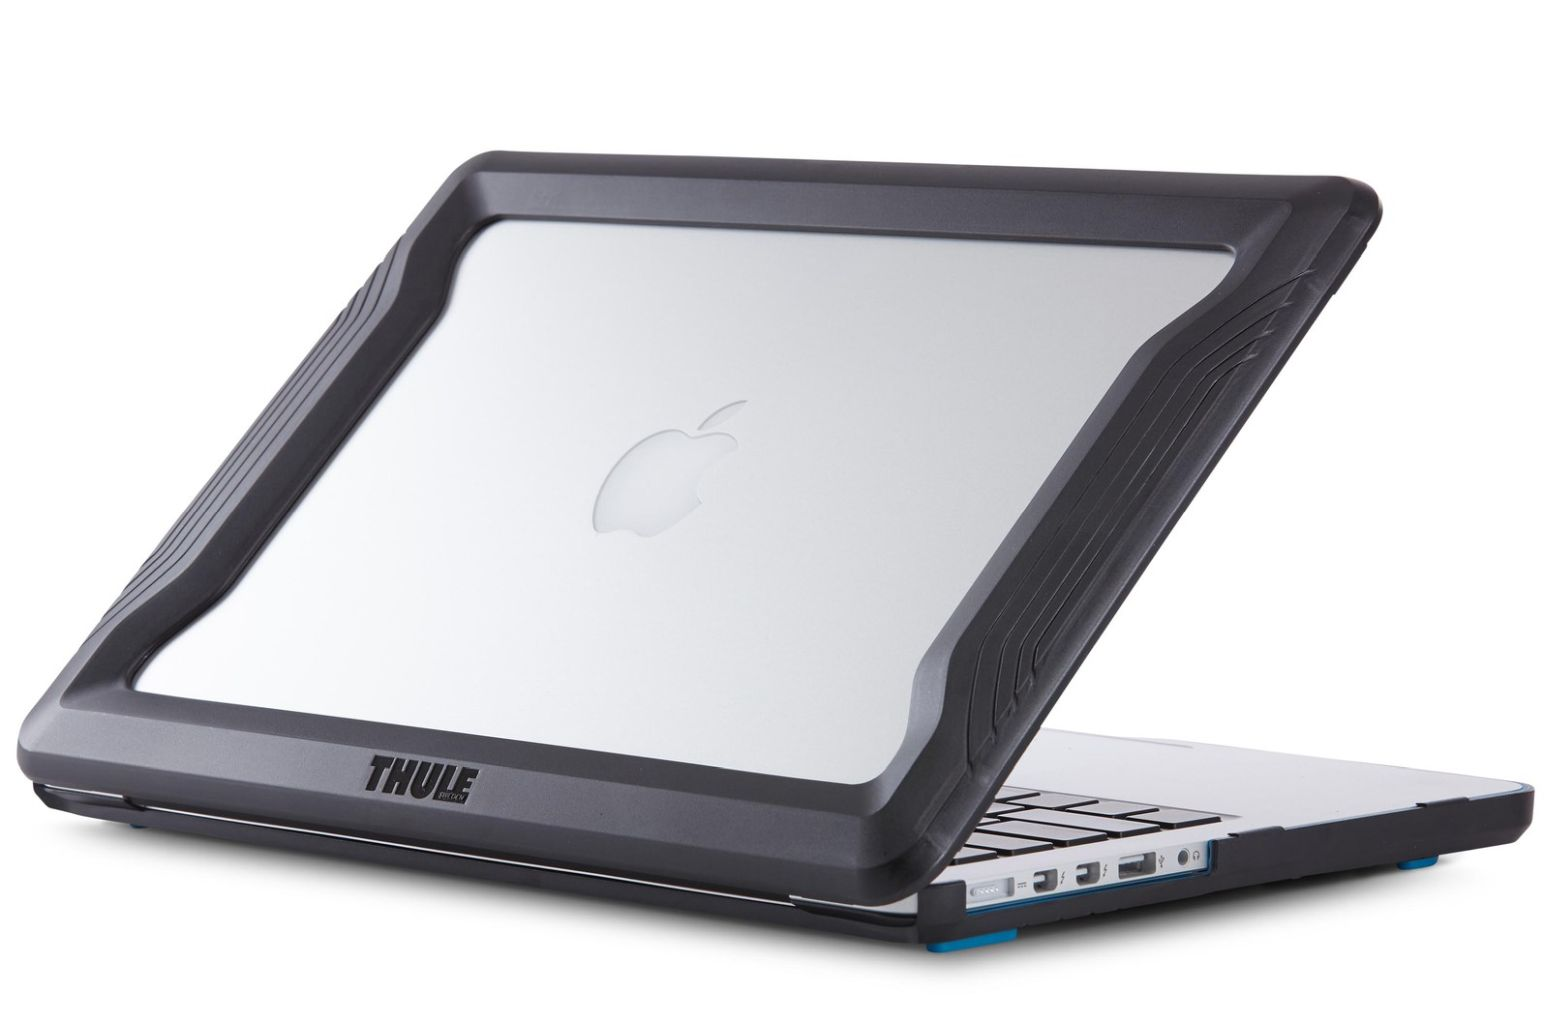 "THULE Vectros Bumper for 13""MacBook Pro Retina Black-30"